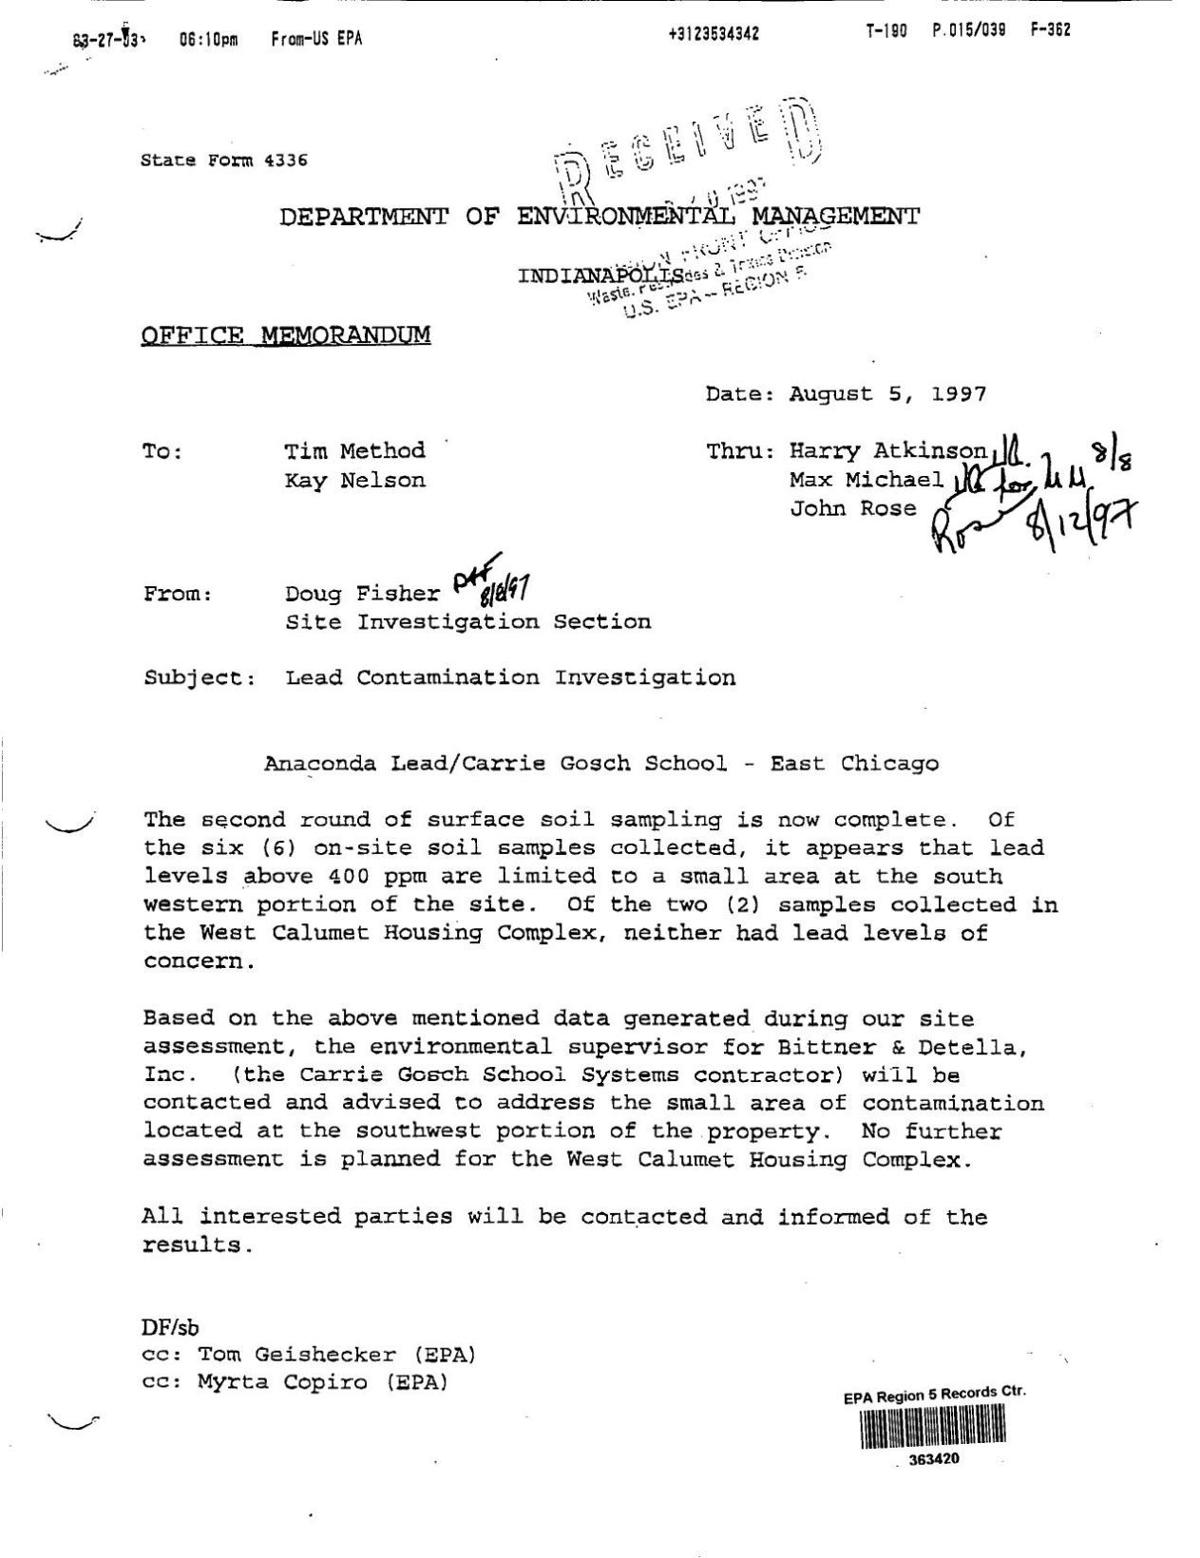 1997 IDEM memo about Carrie Gosch No. 1